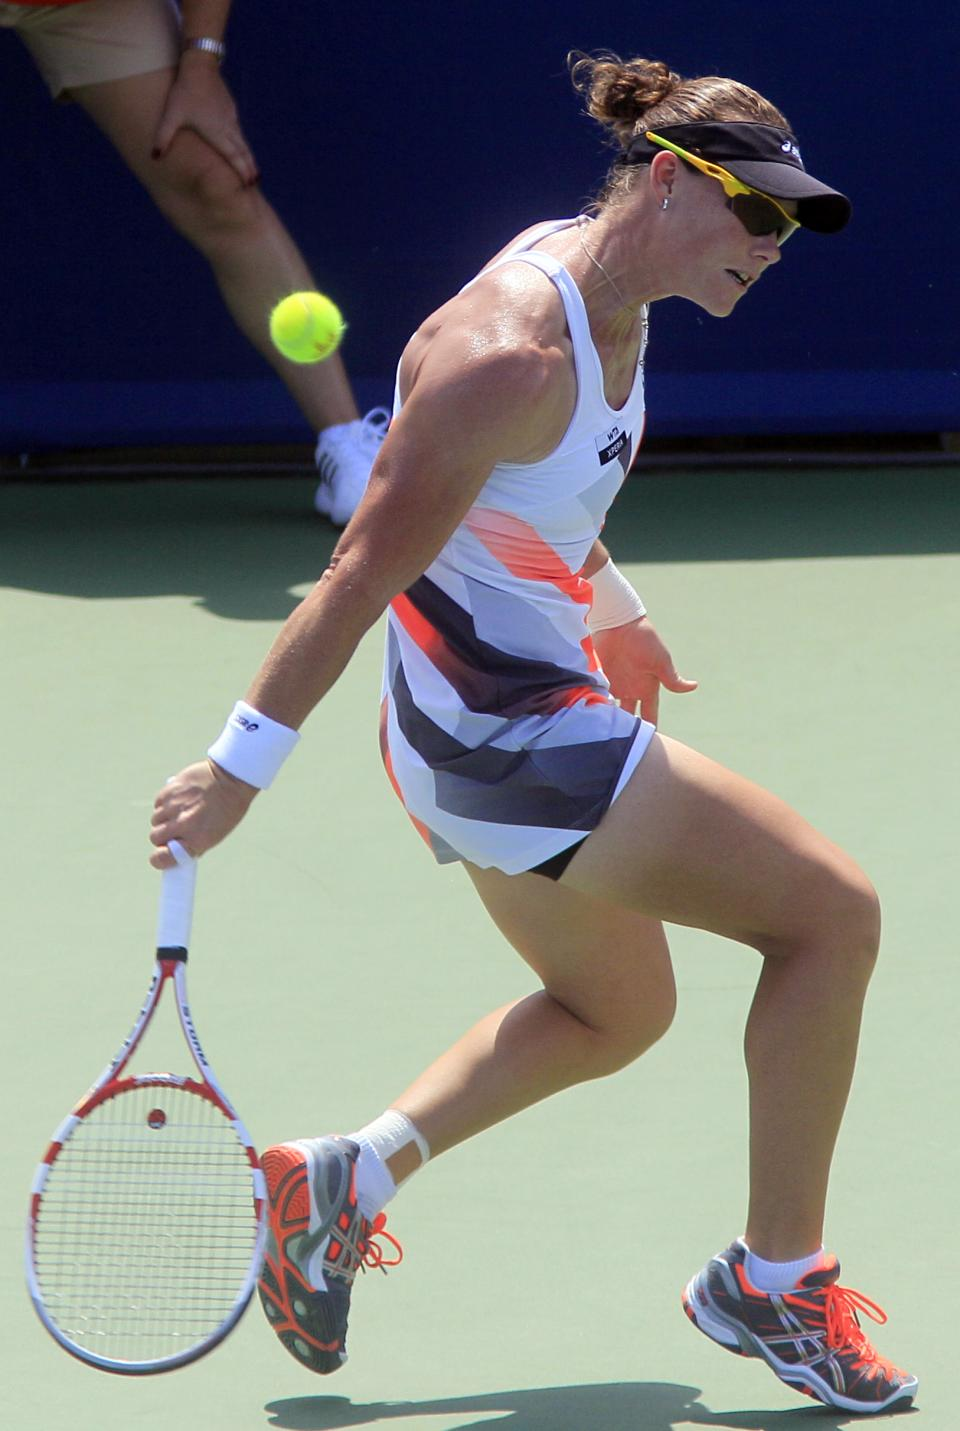 Samantha Stosur, from Australia, hits a backhand shot against Venus Williams during a quarterfinals match at the Western & Southern Open tennis tournament, Friday, Aug. 17, 2012, in Mason, Ohio. (AP Photo/Al Behrman)